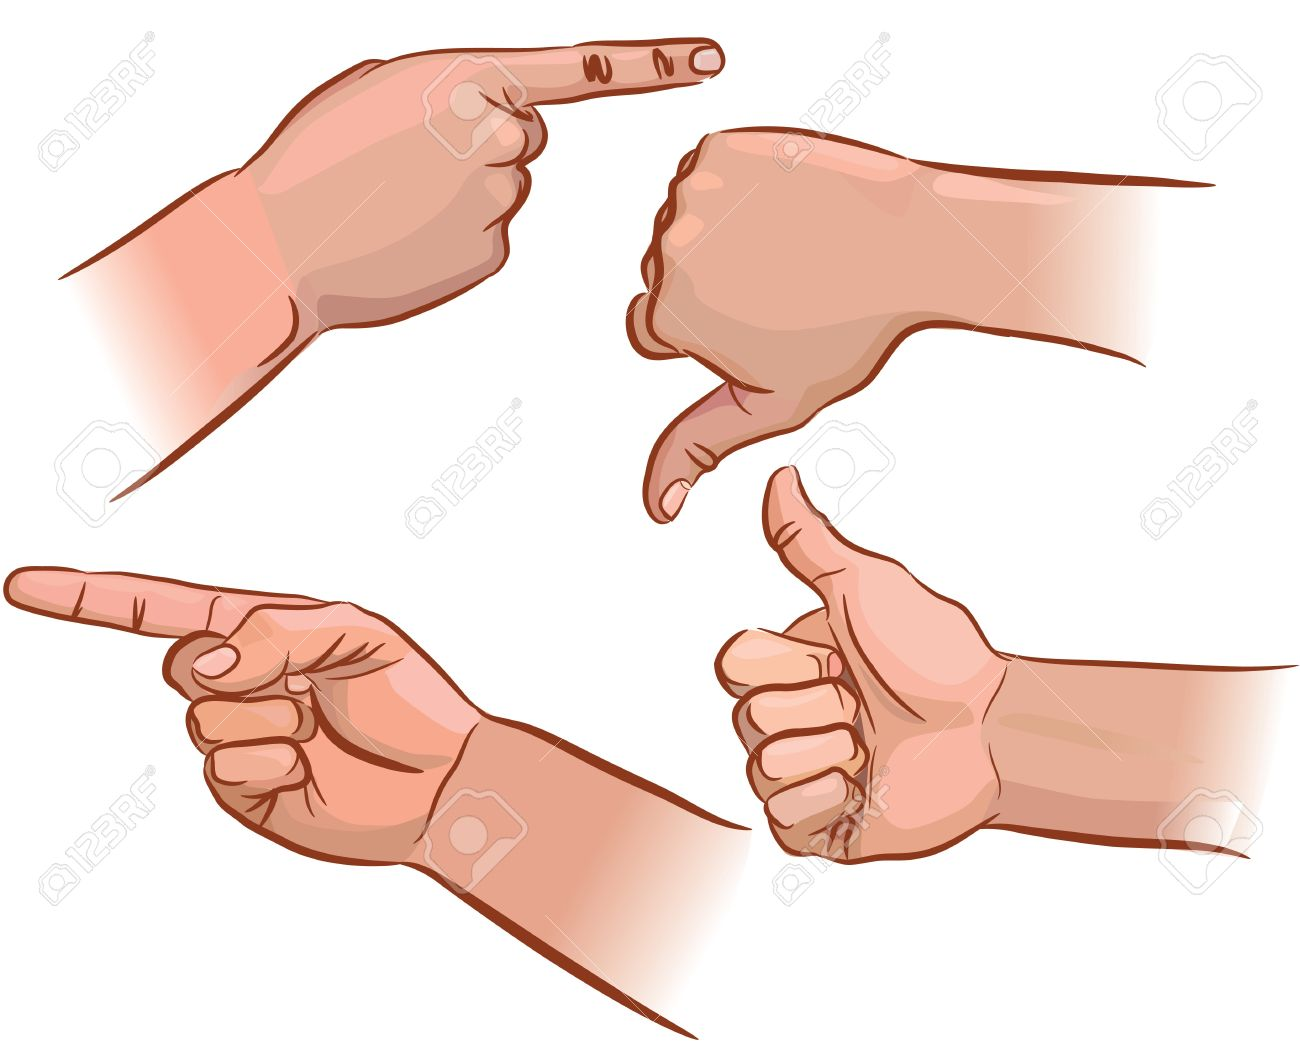 Set of hand pointers from different angles Stock Vector - 14457519